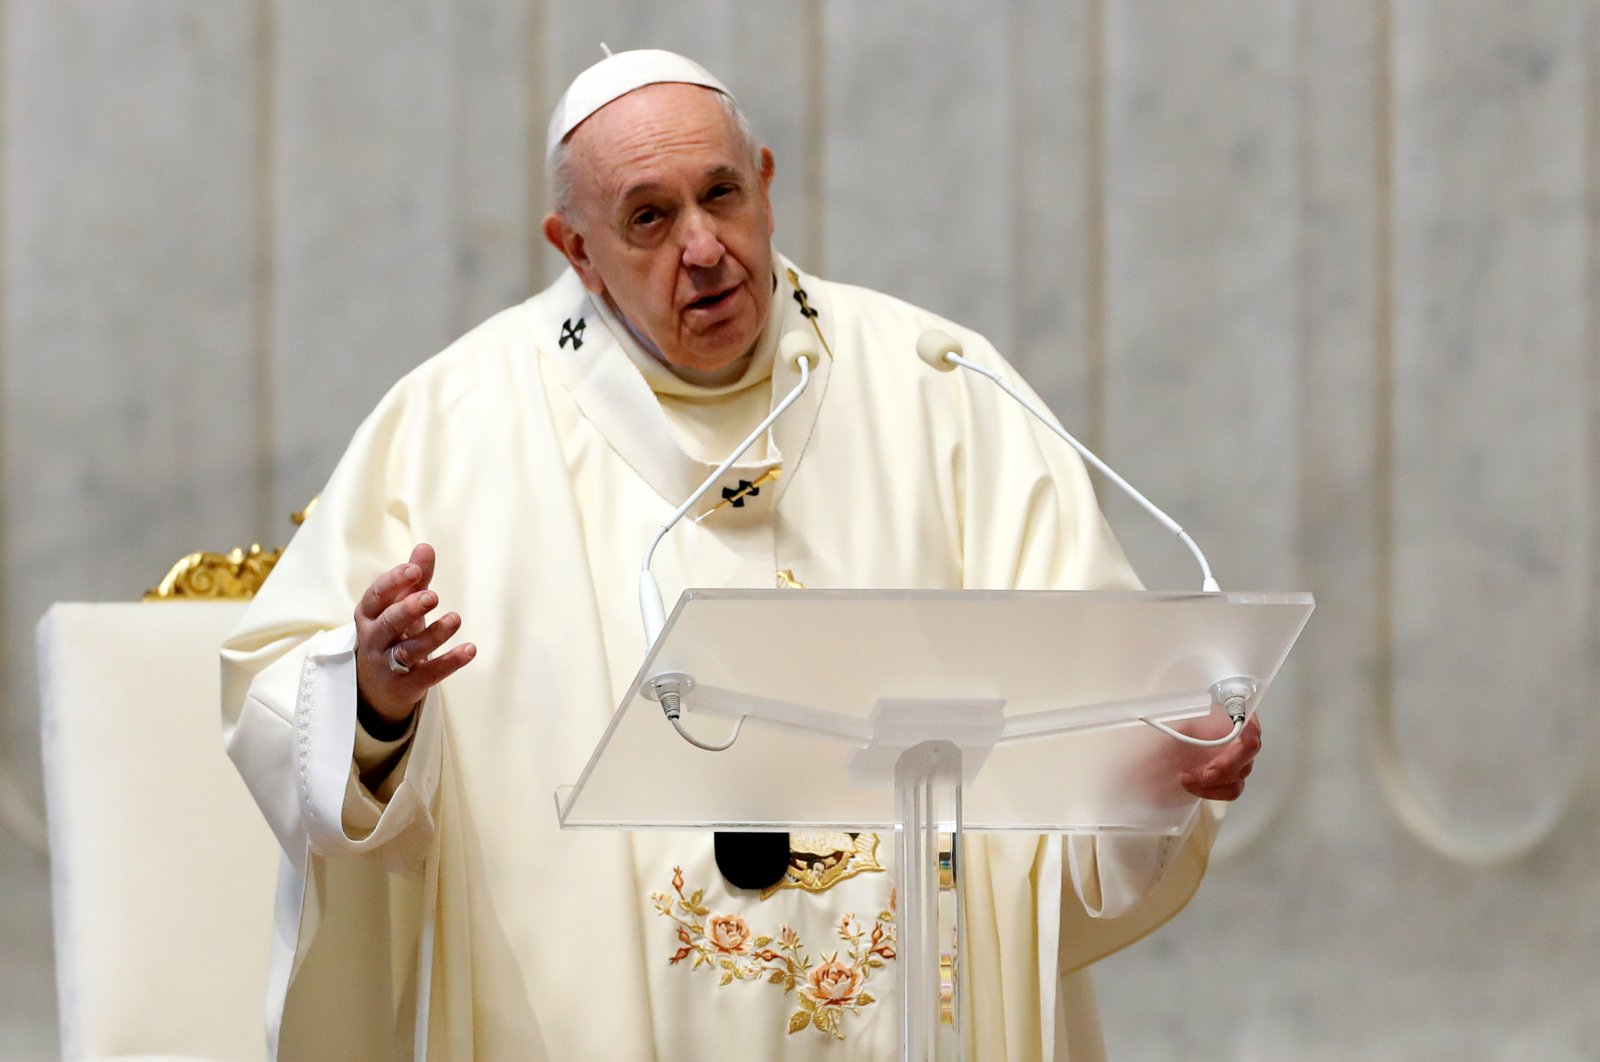 Pope Francis conducts a Mass on the feast day of Our Lady of Guadalupe in St. Peter's Basilica, at the Vatican, Dec. 12, 2020. (Reuters File Photo)